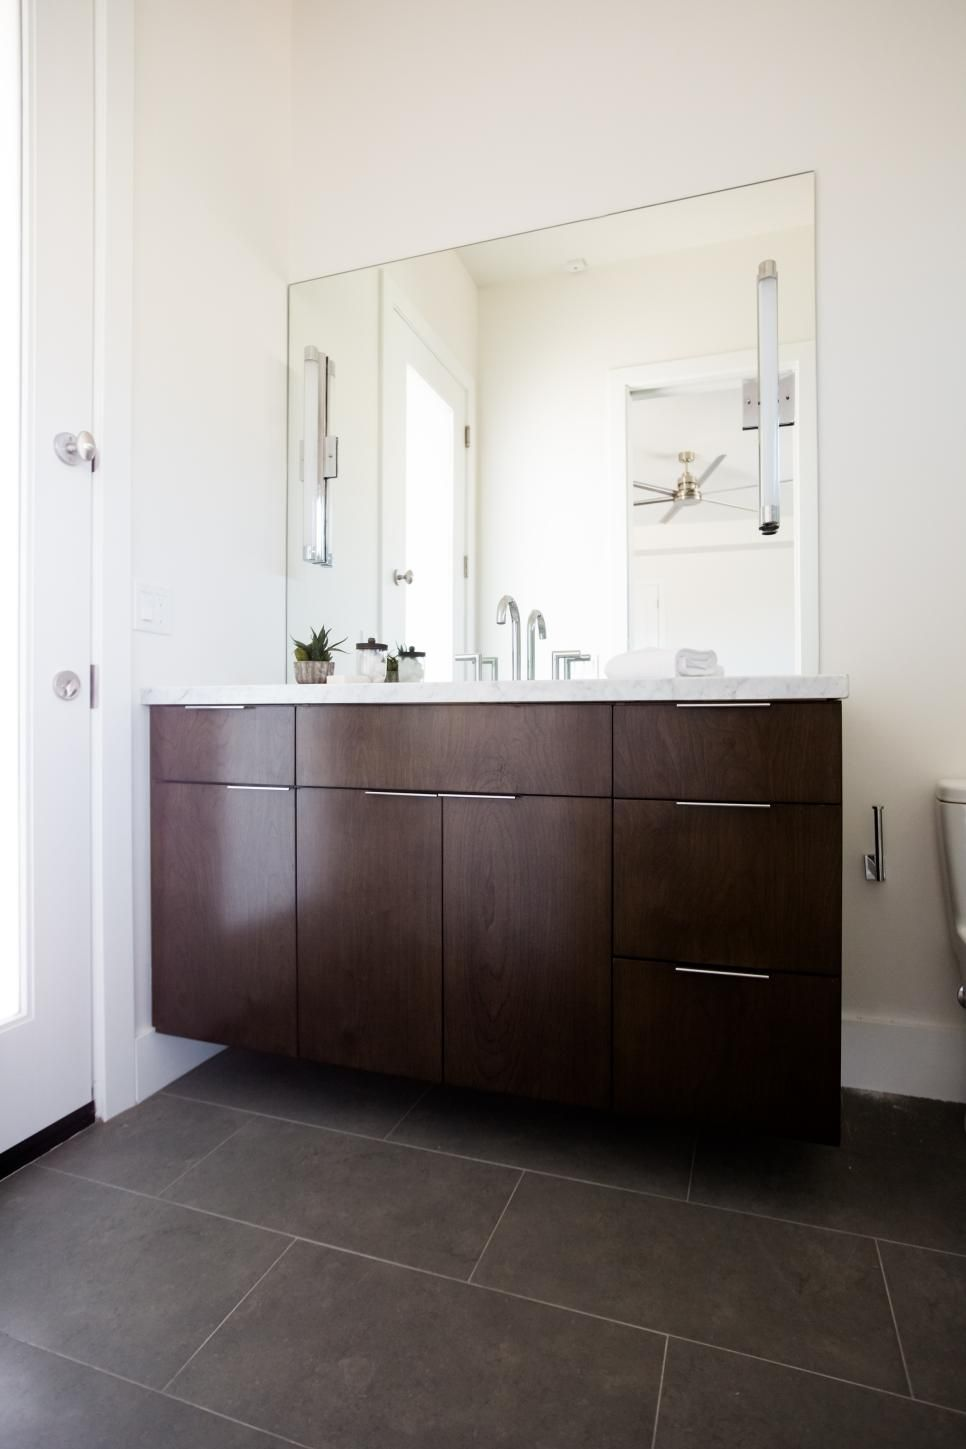 Slim Bathroom Cabinet: To Add A Touch Of Drama And Depth To This Otherwise White